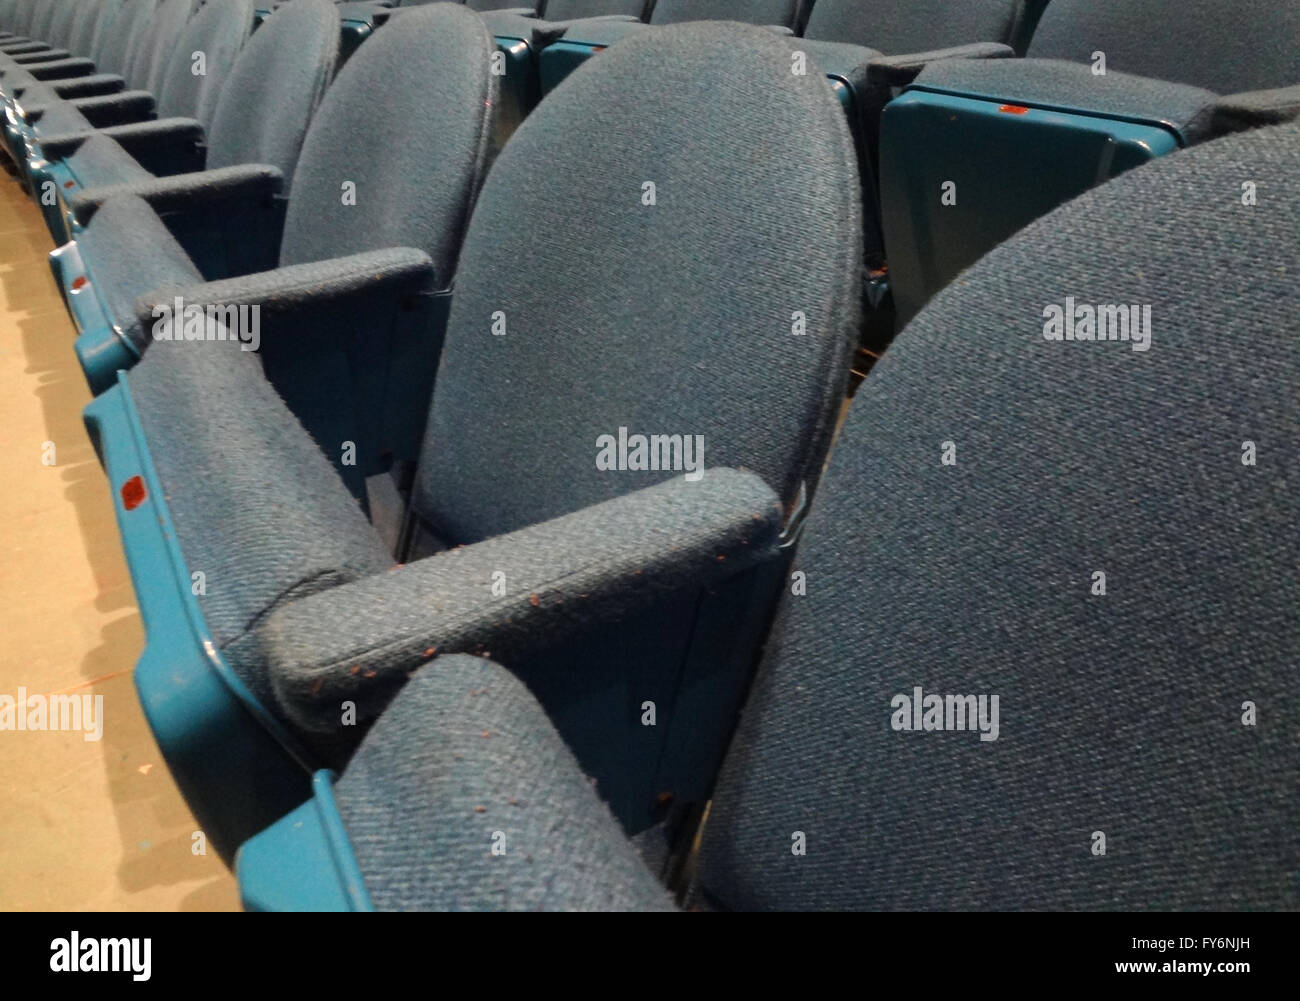 Curved Rows of Light Blue Cloth Seat with armrests in a theater. - Stock Image